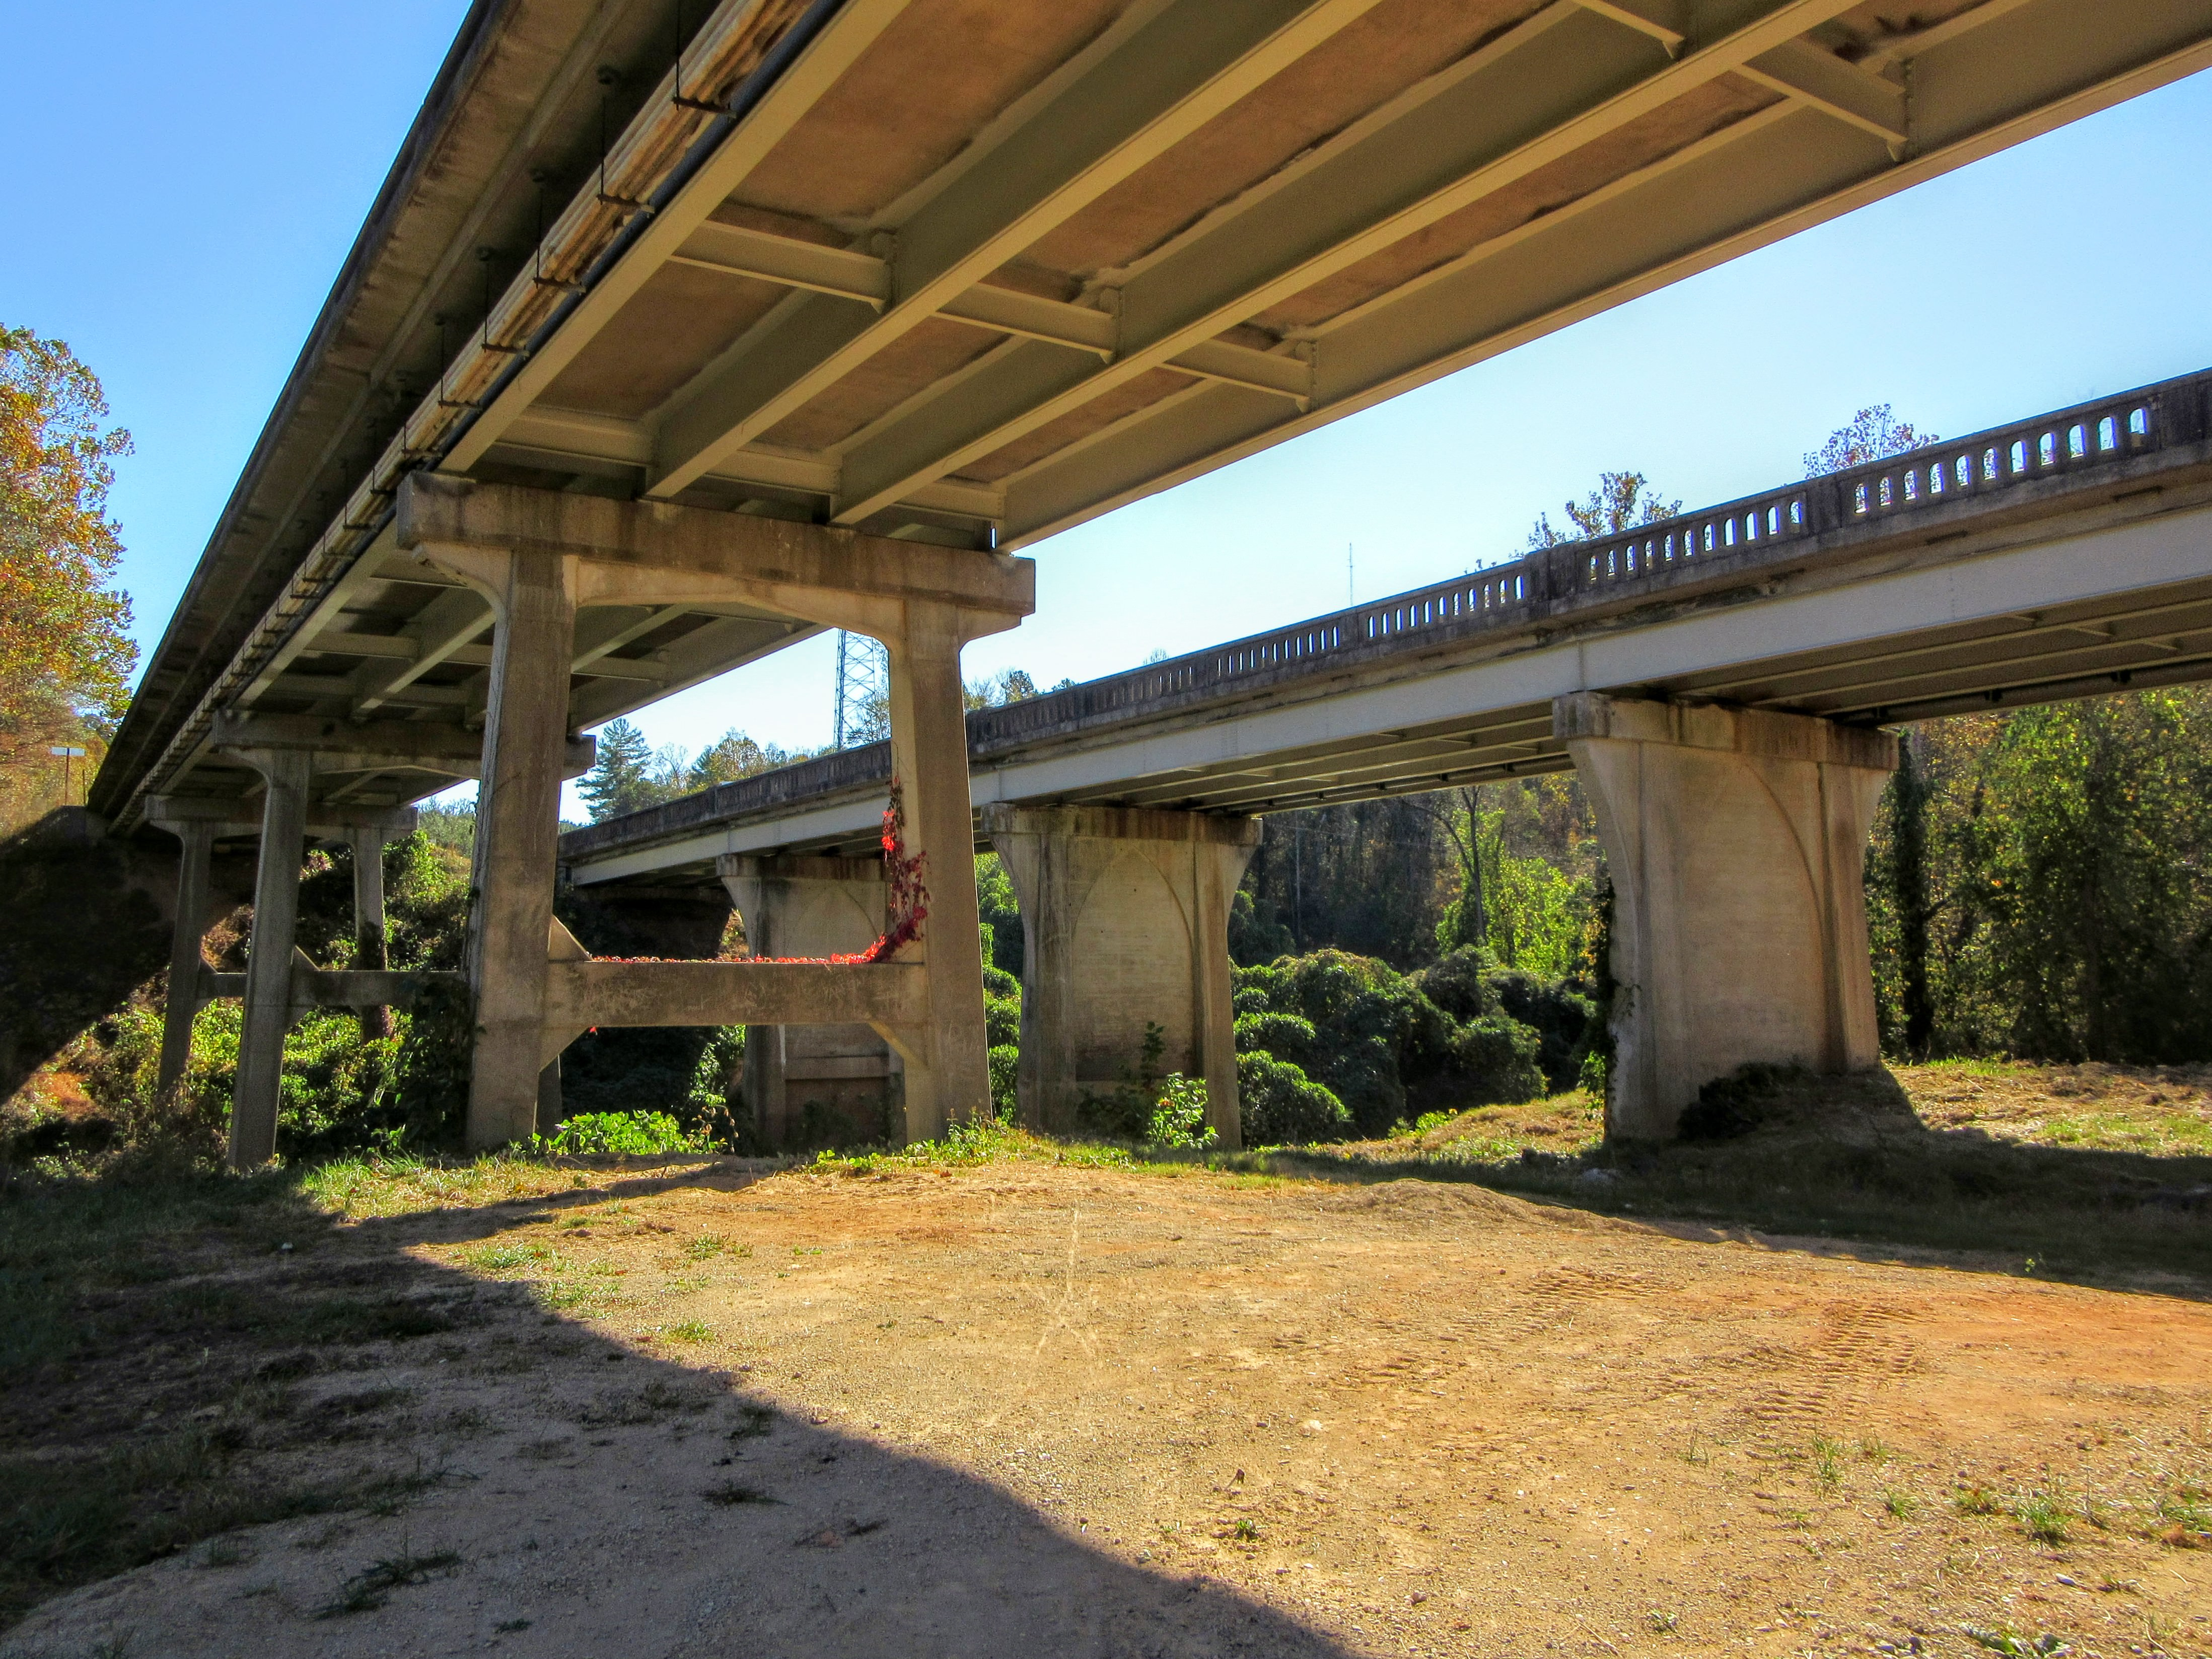 Underneath the bridges. | Hiking in Shelby, North Carolina: the First Broad River Trail.